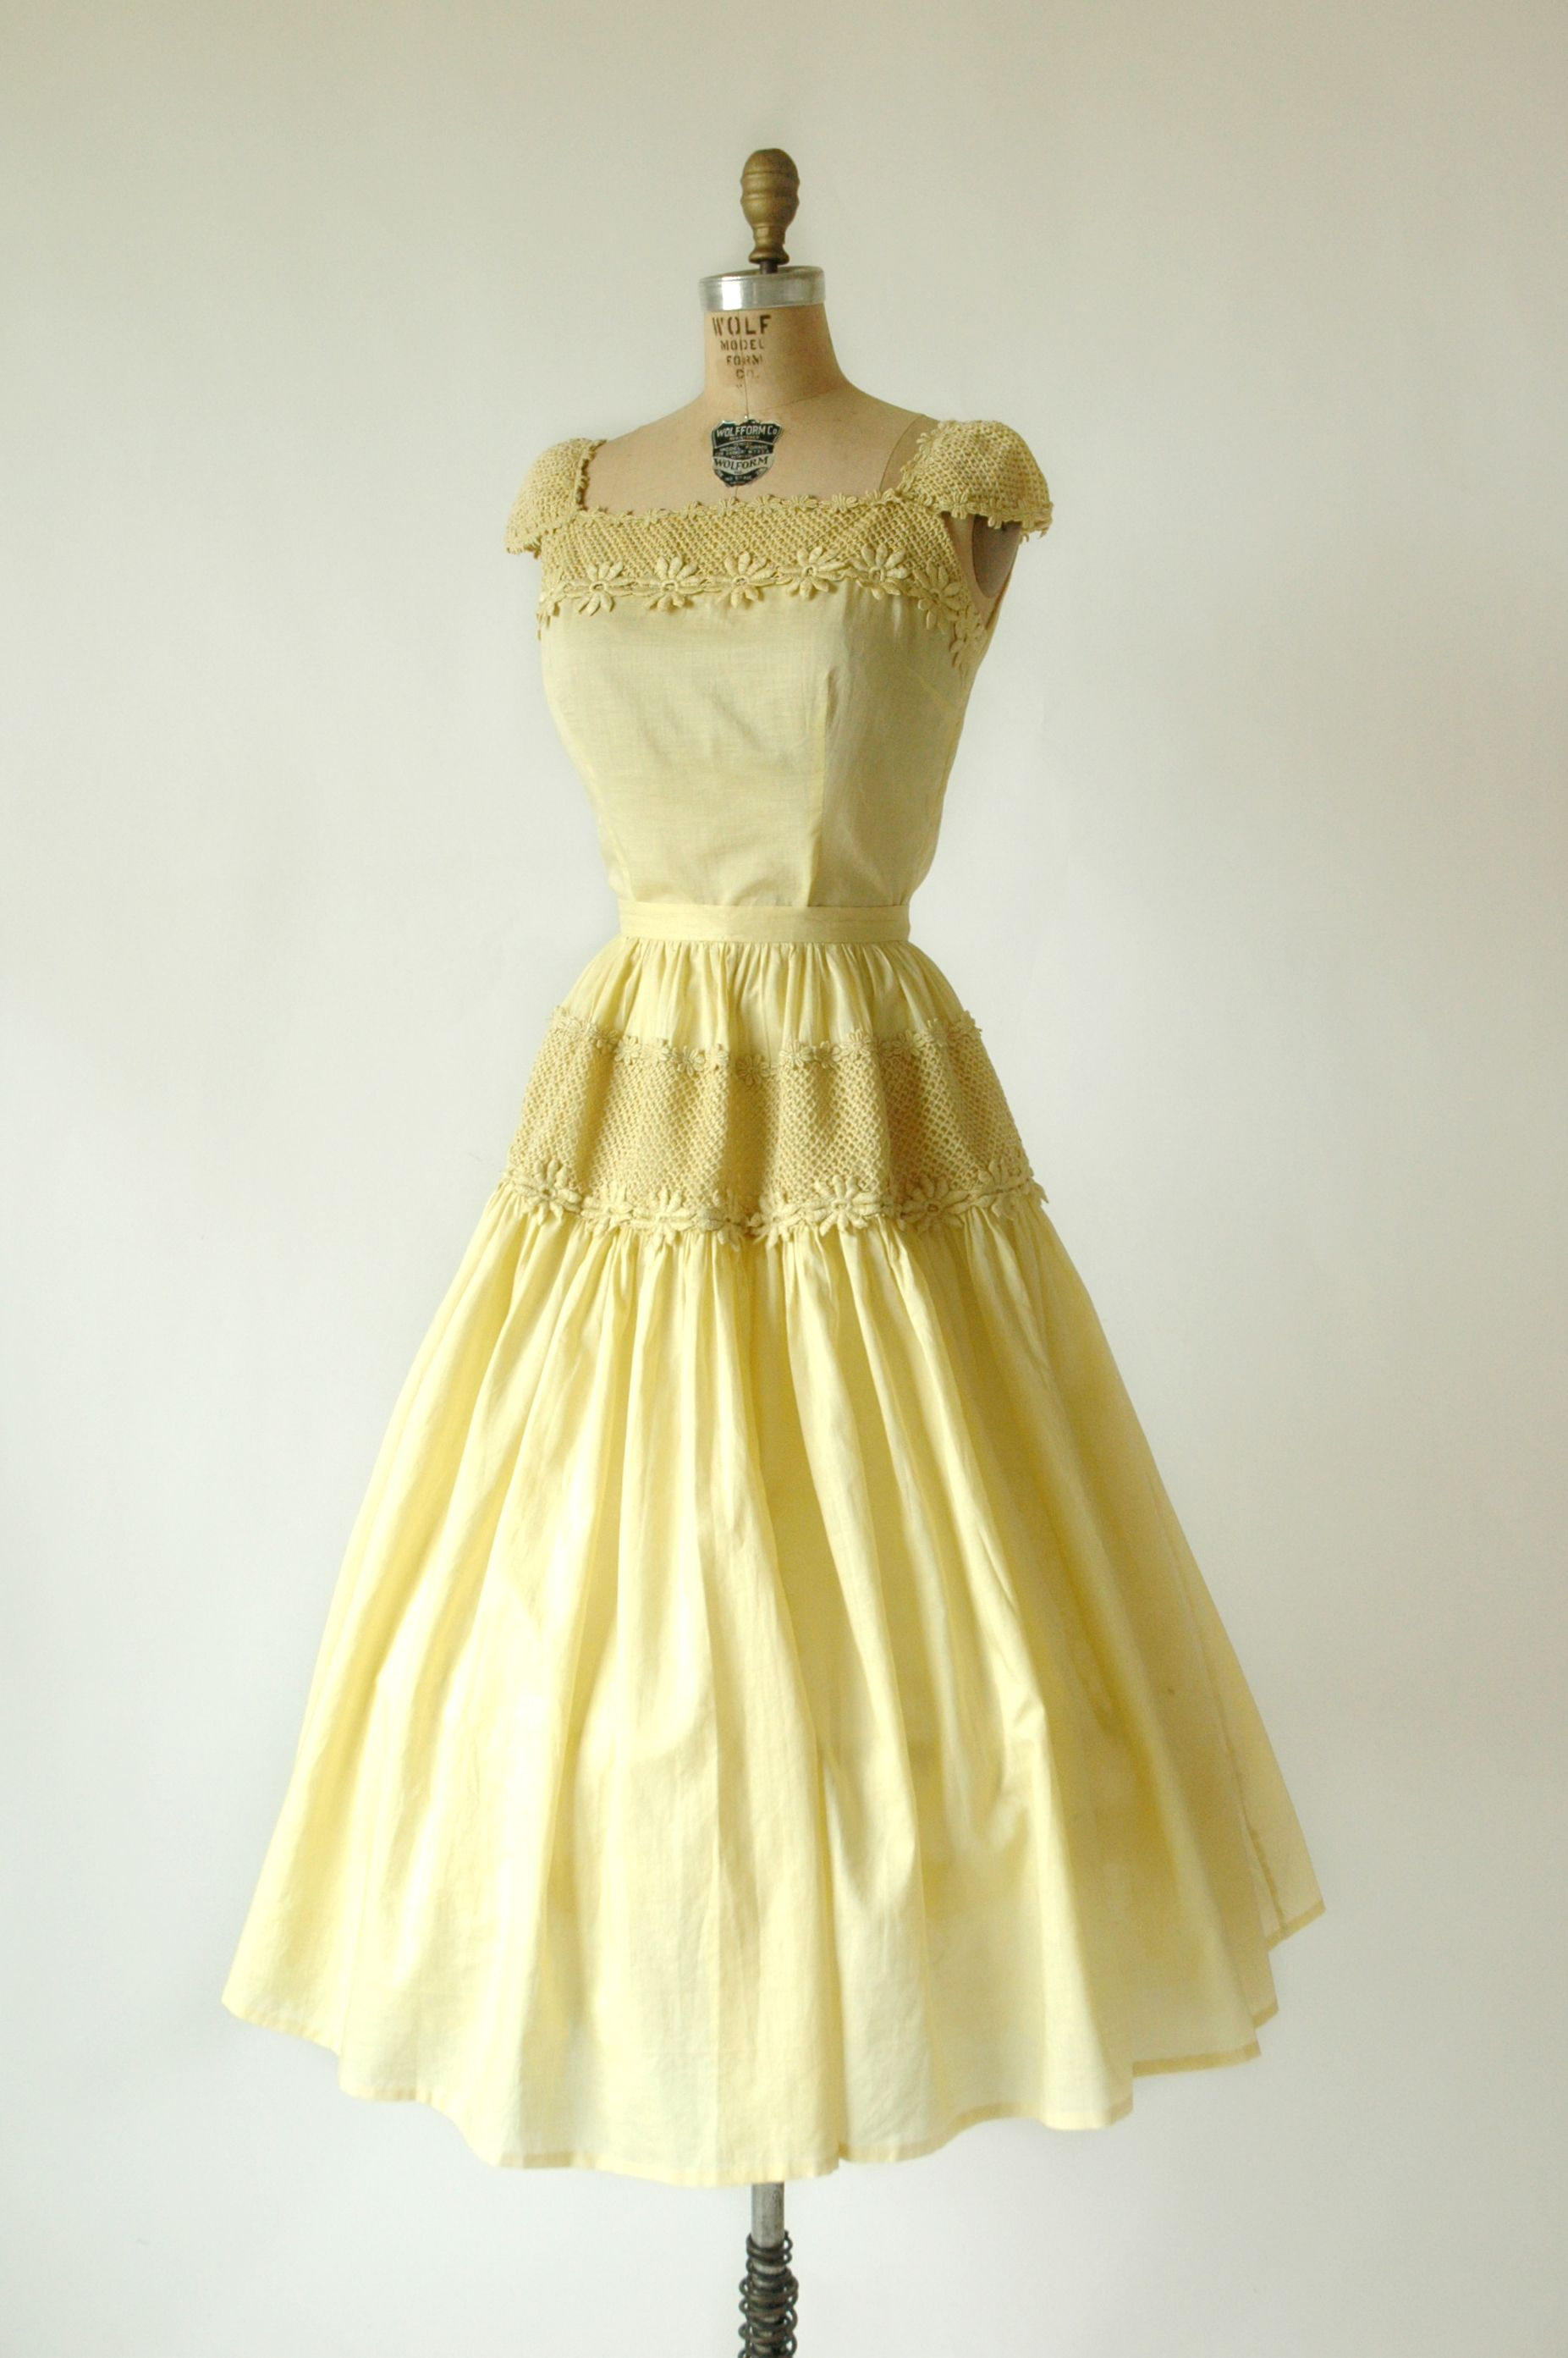 Loving This 1950s Lemon Curd Yellow Dress What Color Is Calling Your Name This Spring Dresses Vintage Outfits Timeless Fashion [ 2786 x 1853 Pixel ]